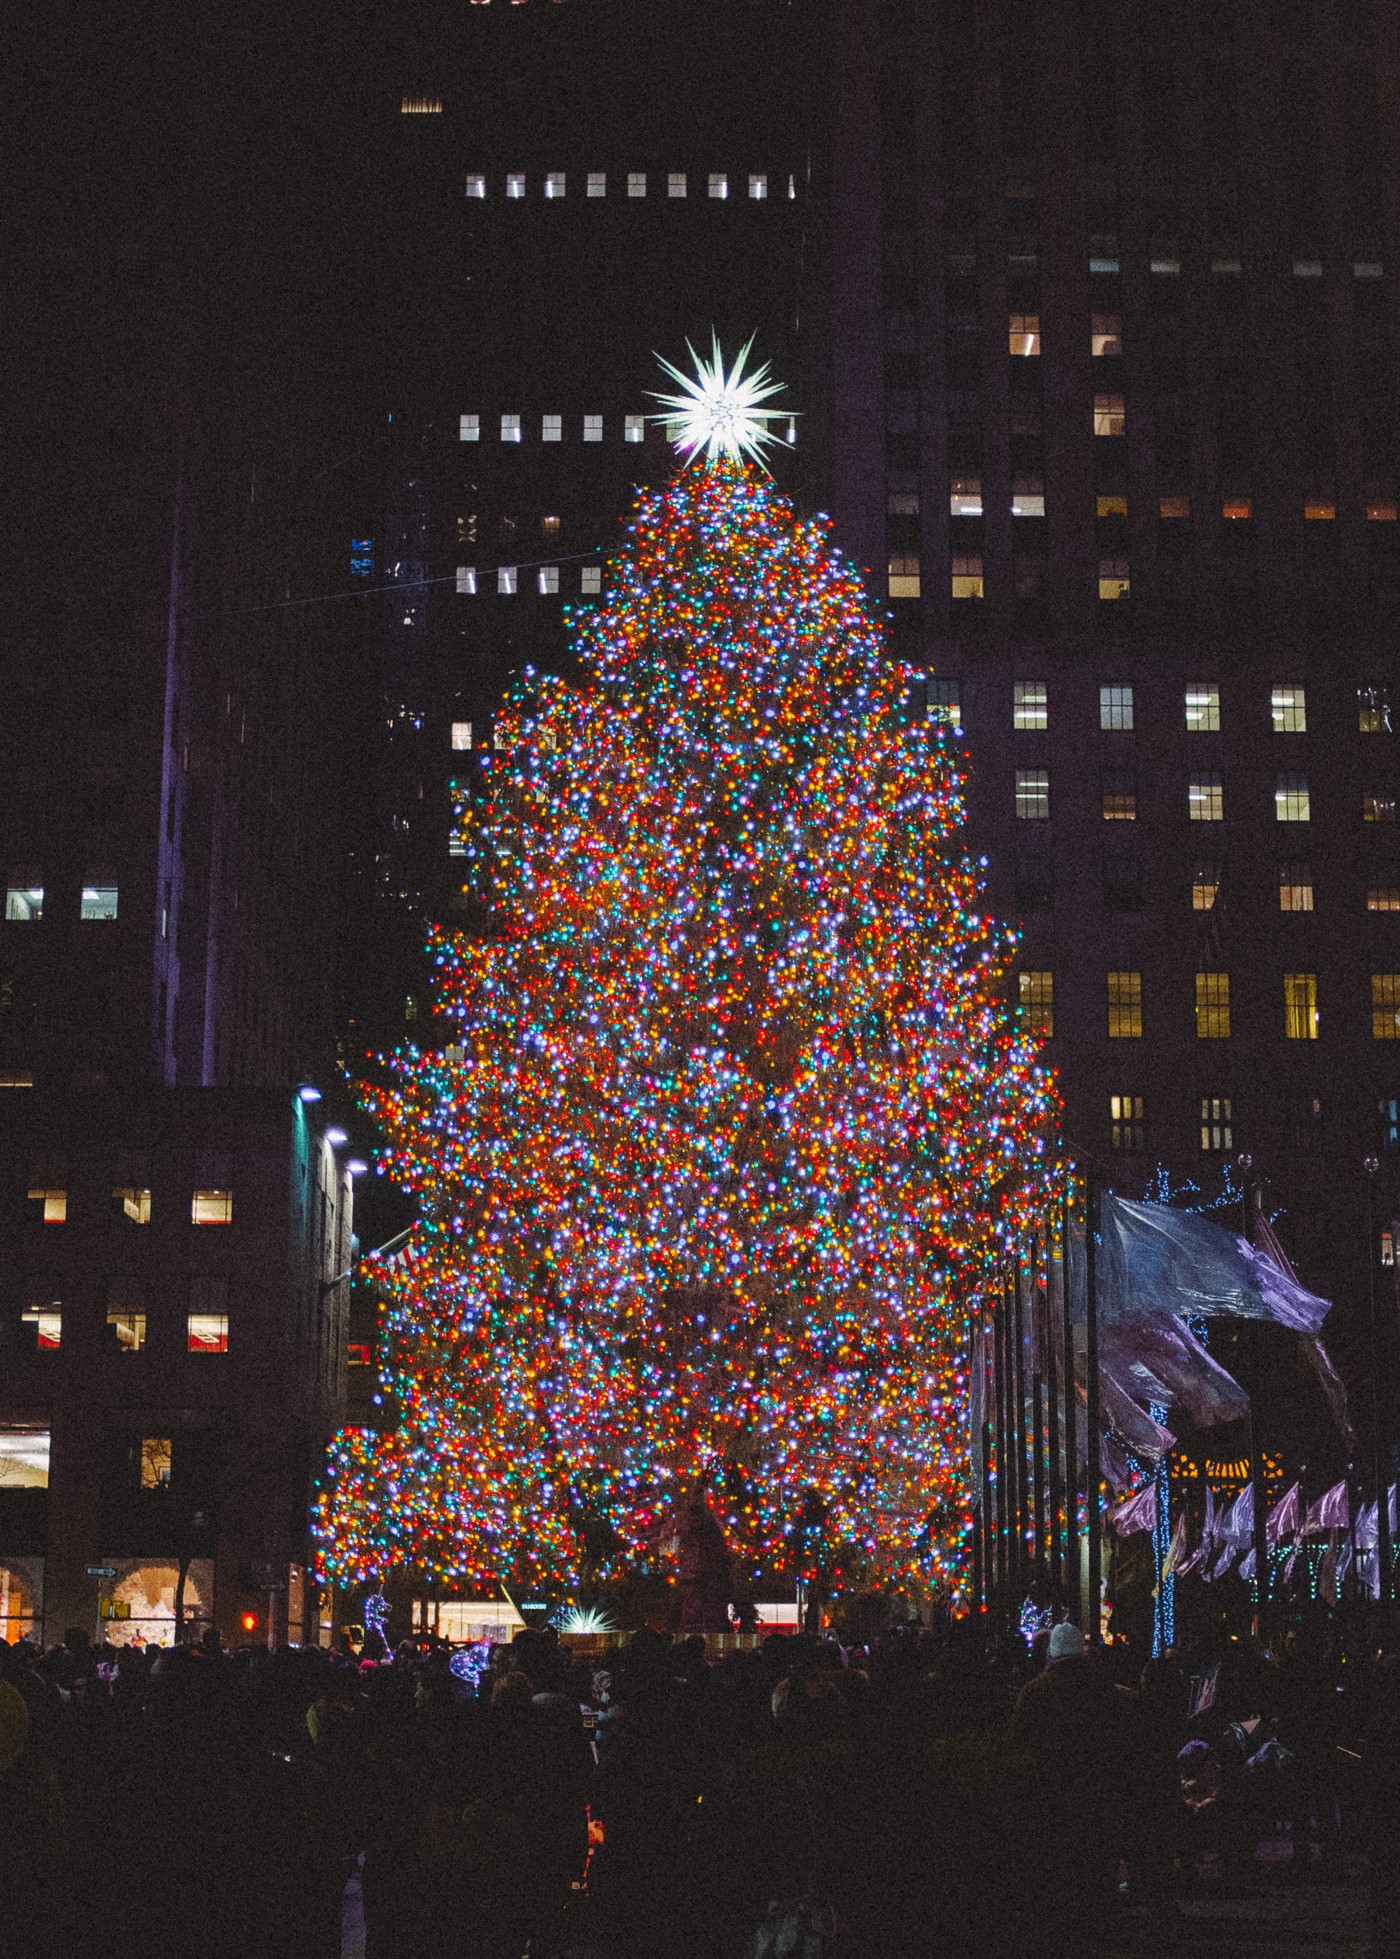 The Rockefeller Center Christmas tree in New York City.